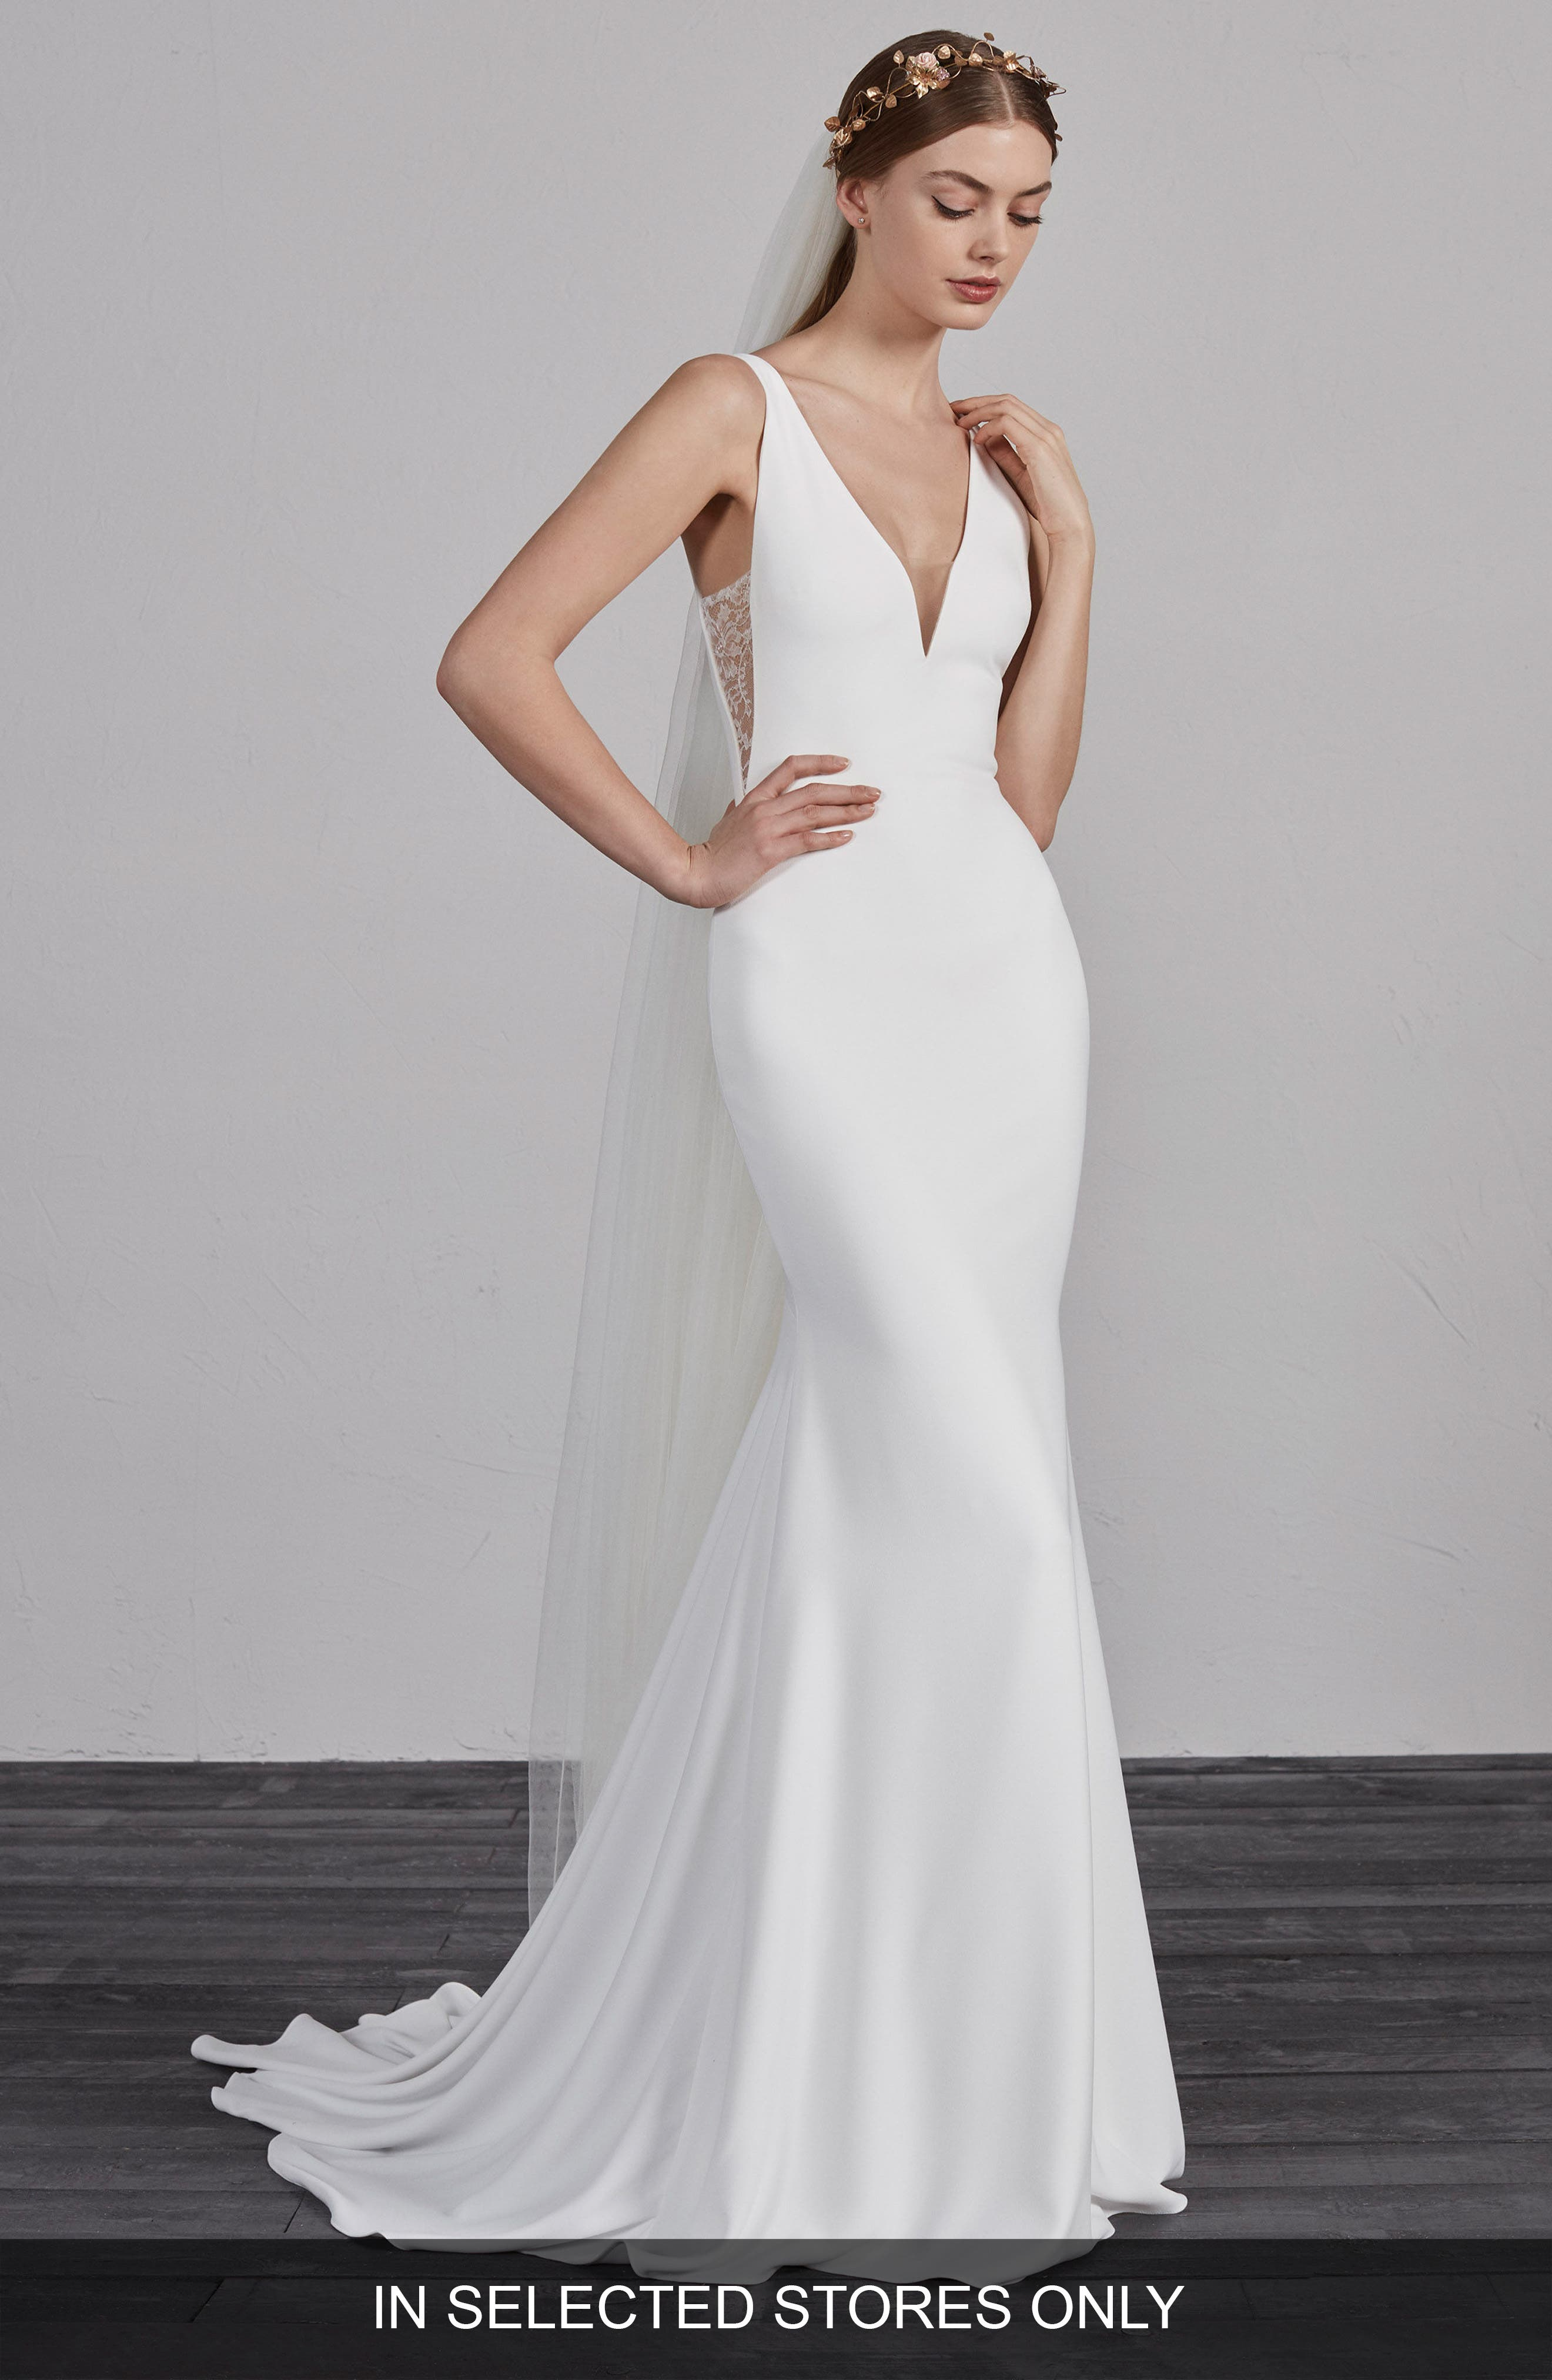 36028461577 pronovias weddings   parties dresses for women - Buy best women s pronovias  weddings   parties dresses on Cools.com Shop